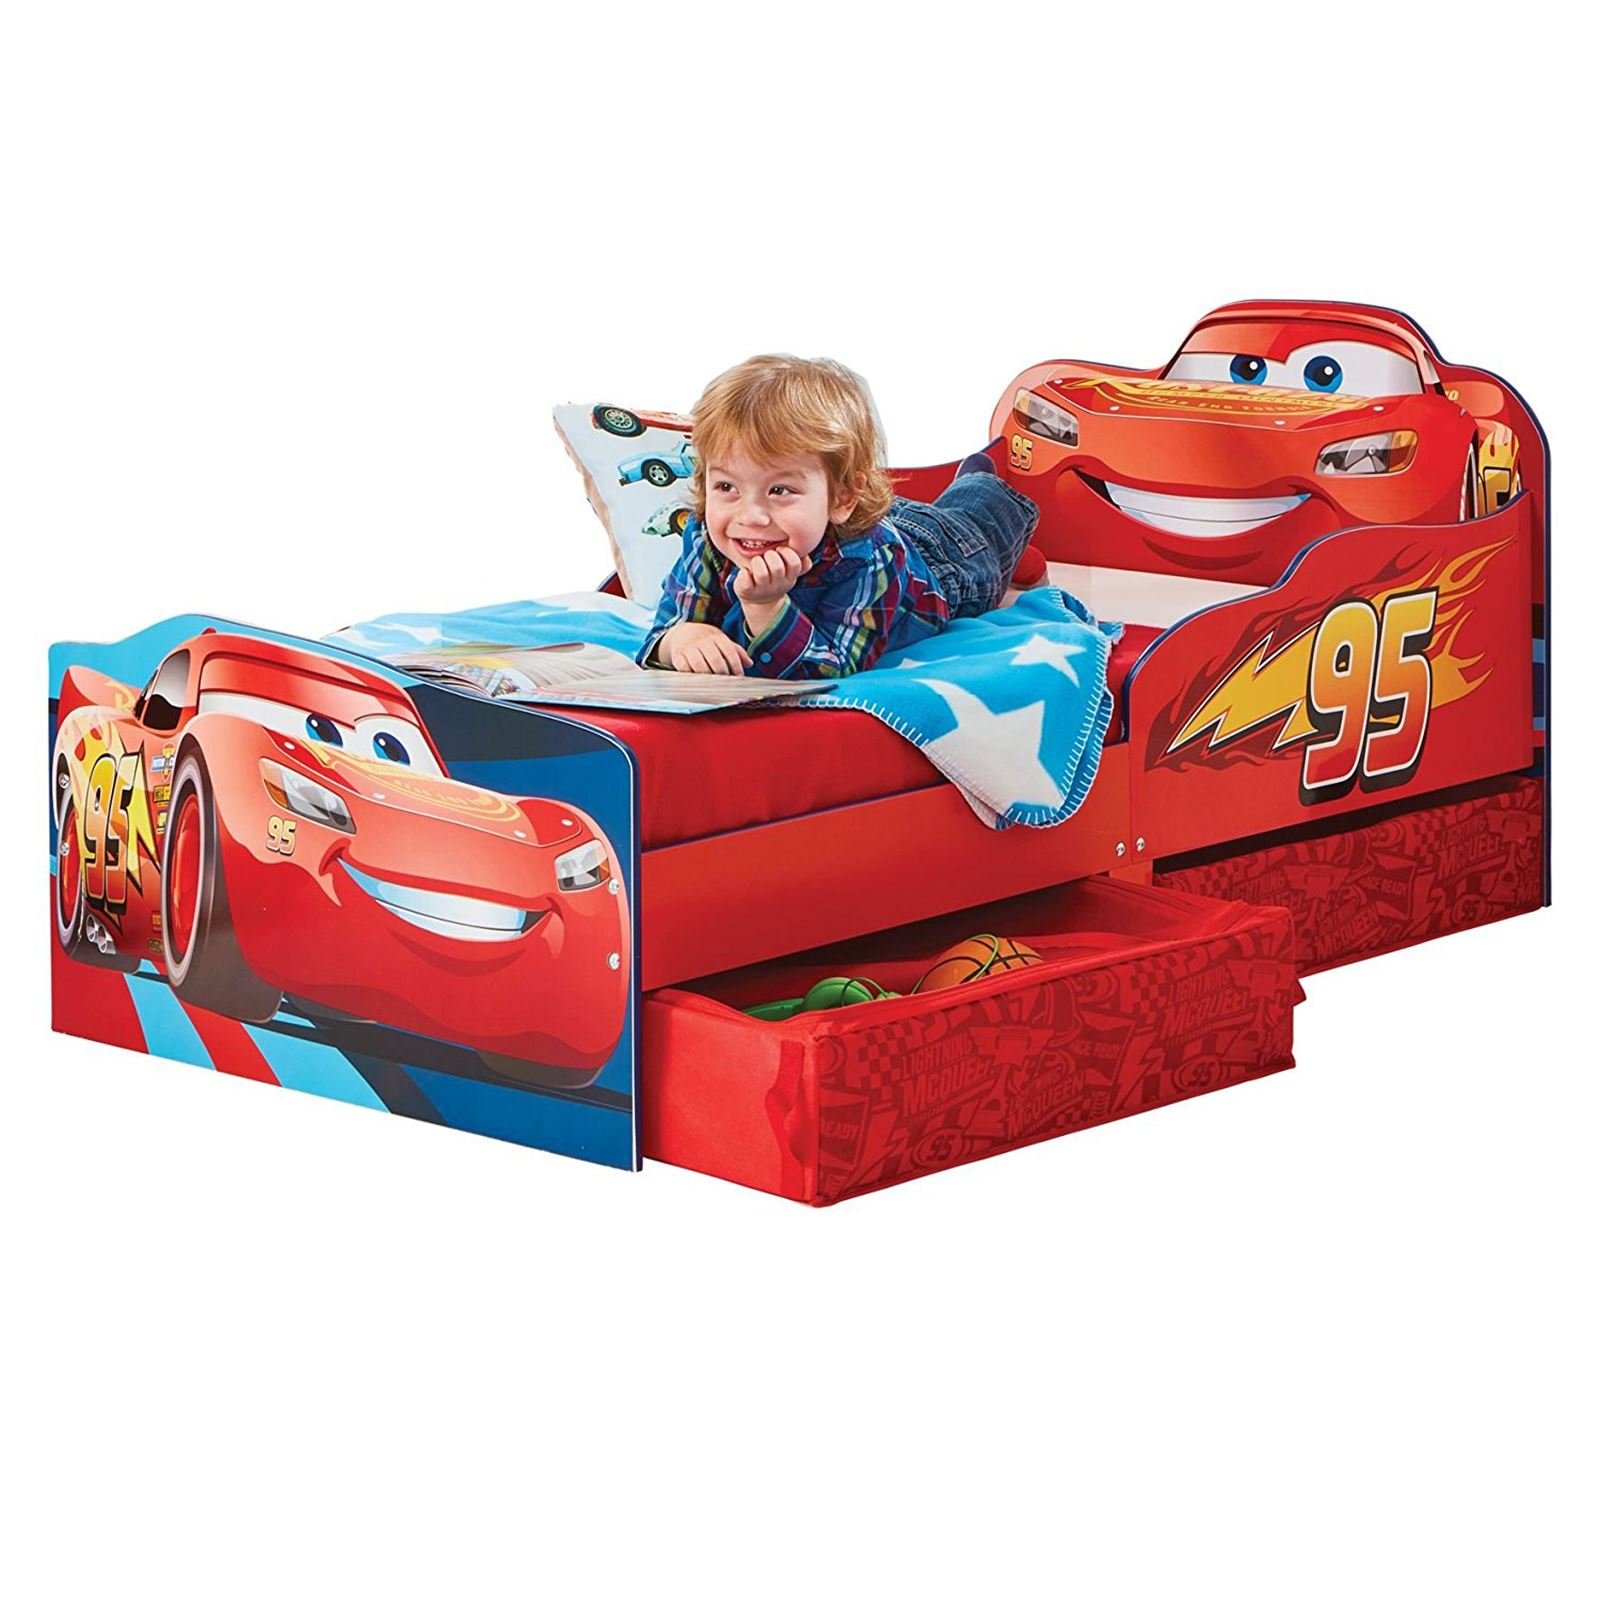 Disney Toddler Bed With Storage Mattress Cars Peppa